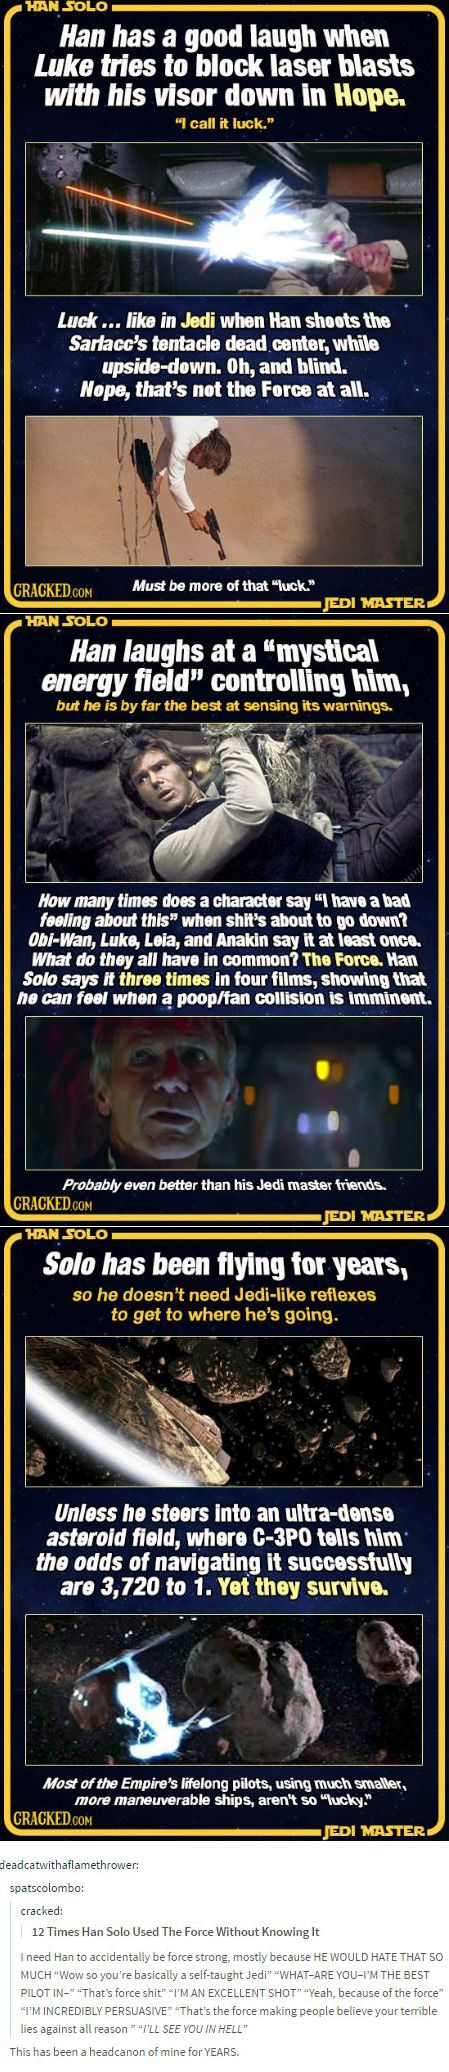 This is exactly what I thought  when I watched the original three movies. I was yelling a Han to just admit he uses the Force.